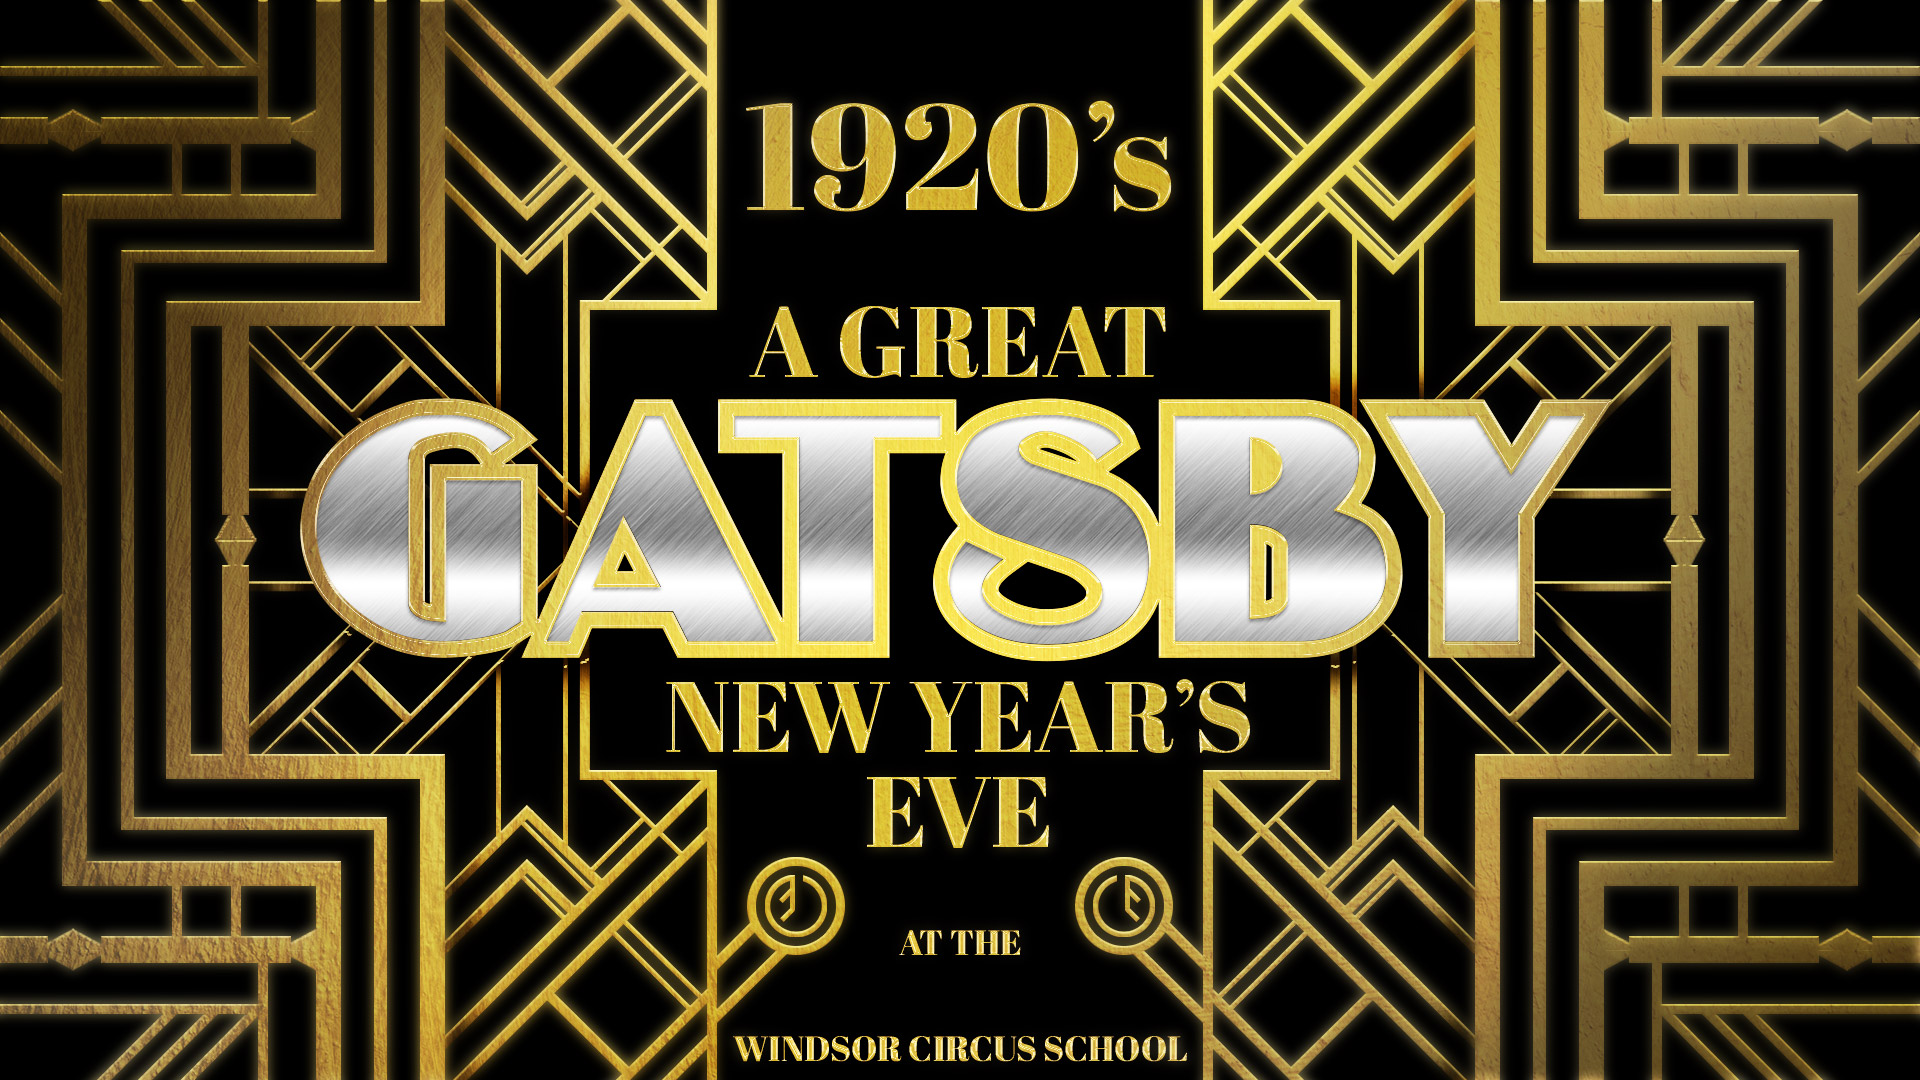 A Great Gatsby New Year's Eve Poster